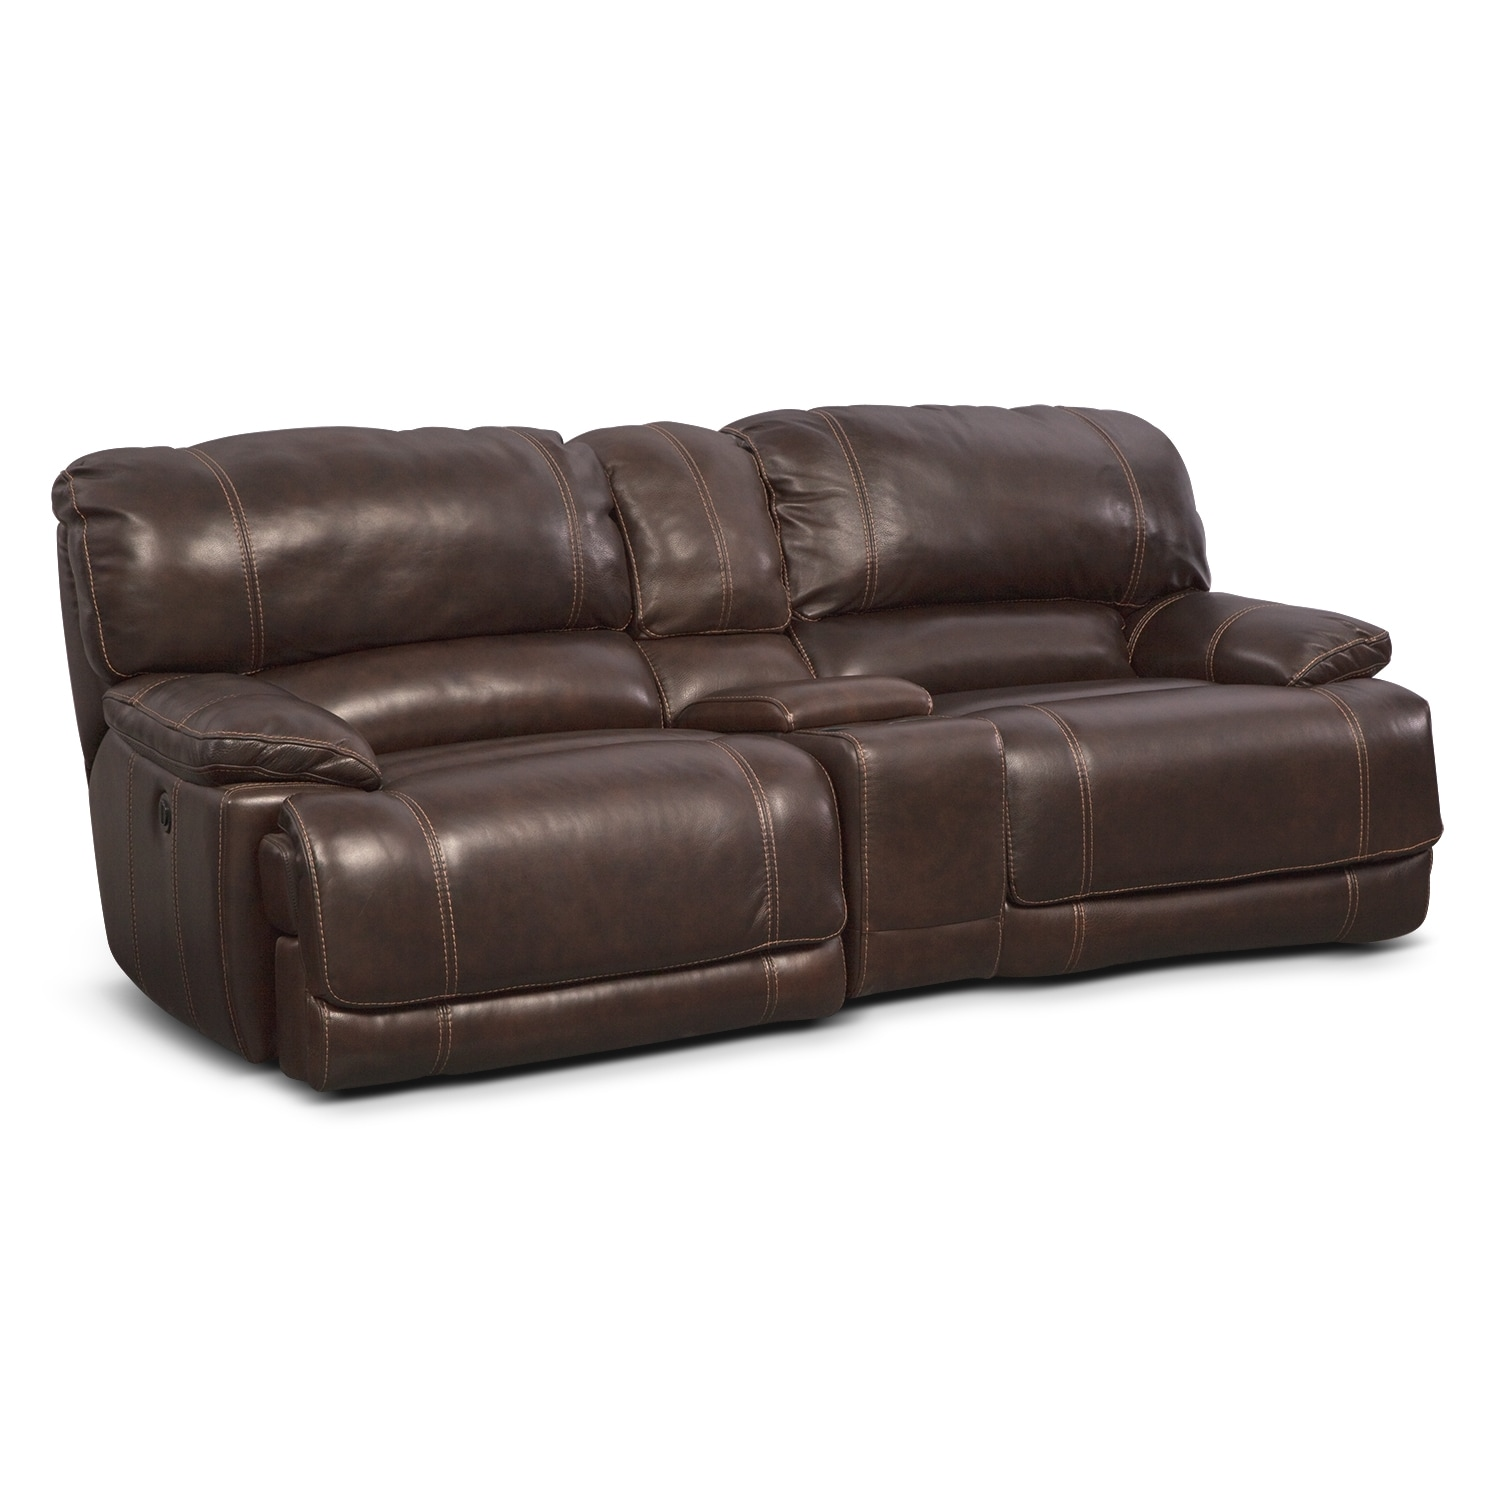 St. Malo 3 Pc. Power Reclining Sofa with Console